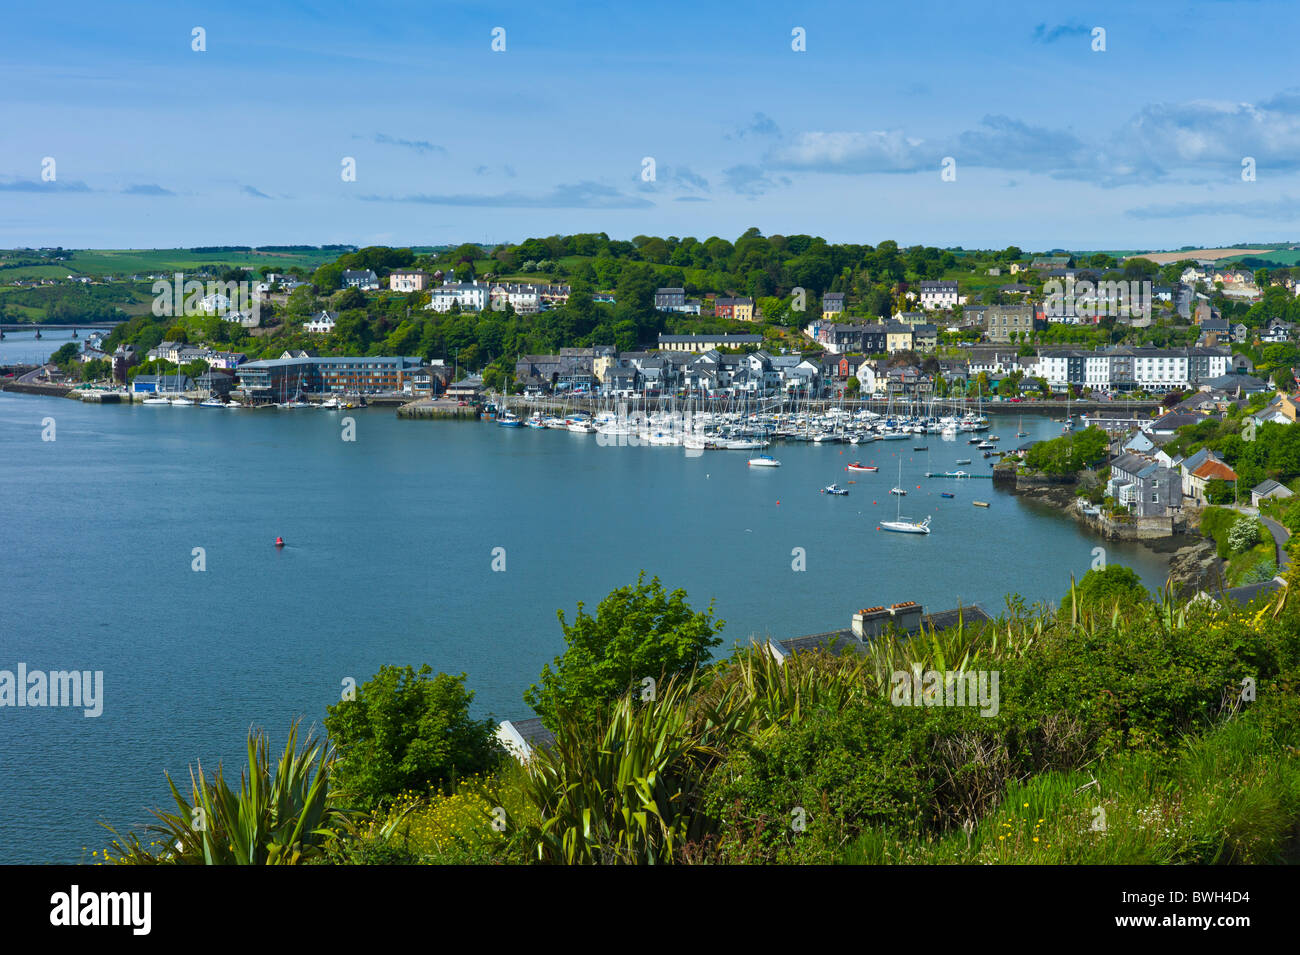 Popular tourist destination Kinsale harbour from Scilly, County Cork, Ireland - Stock Image